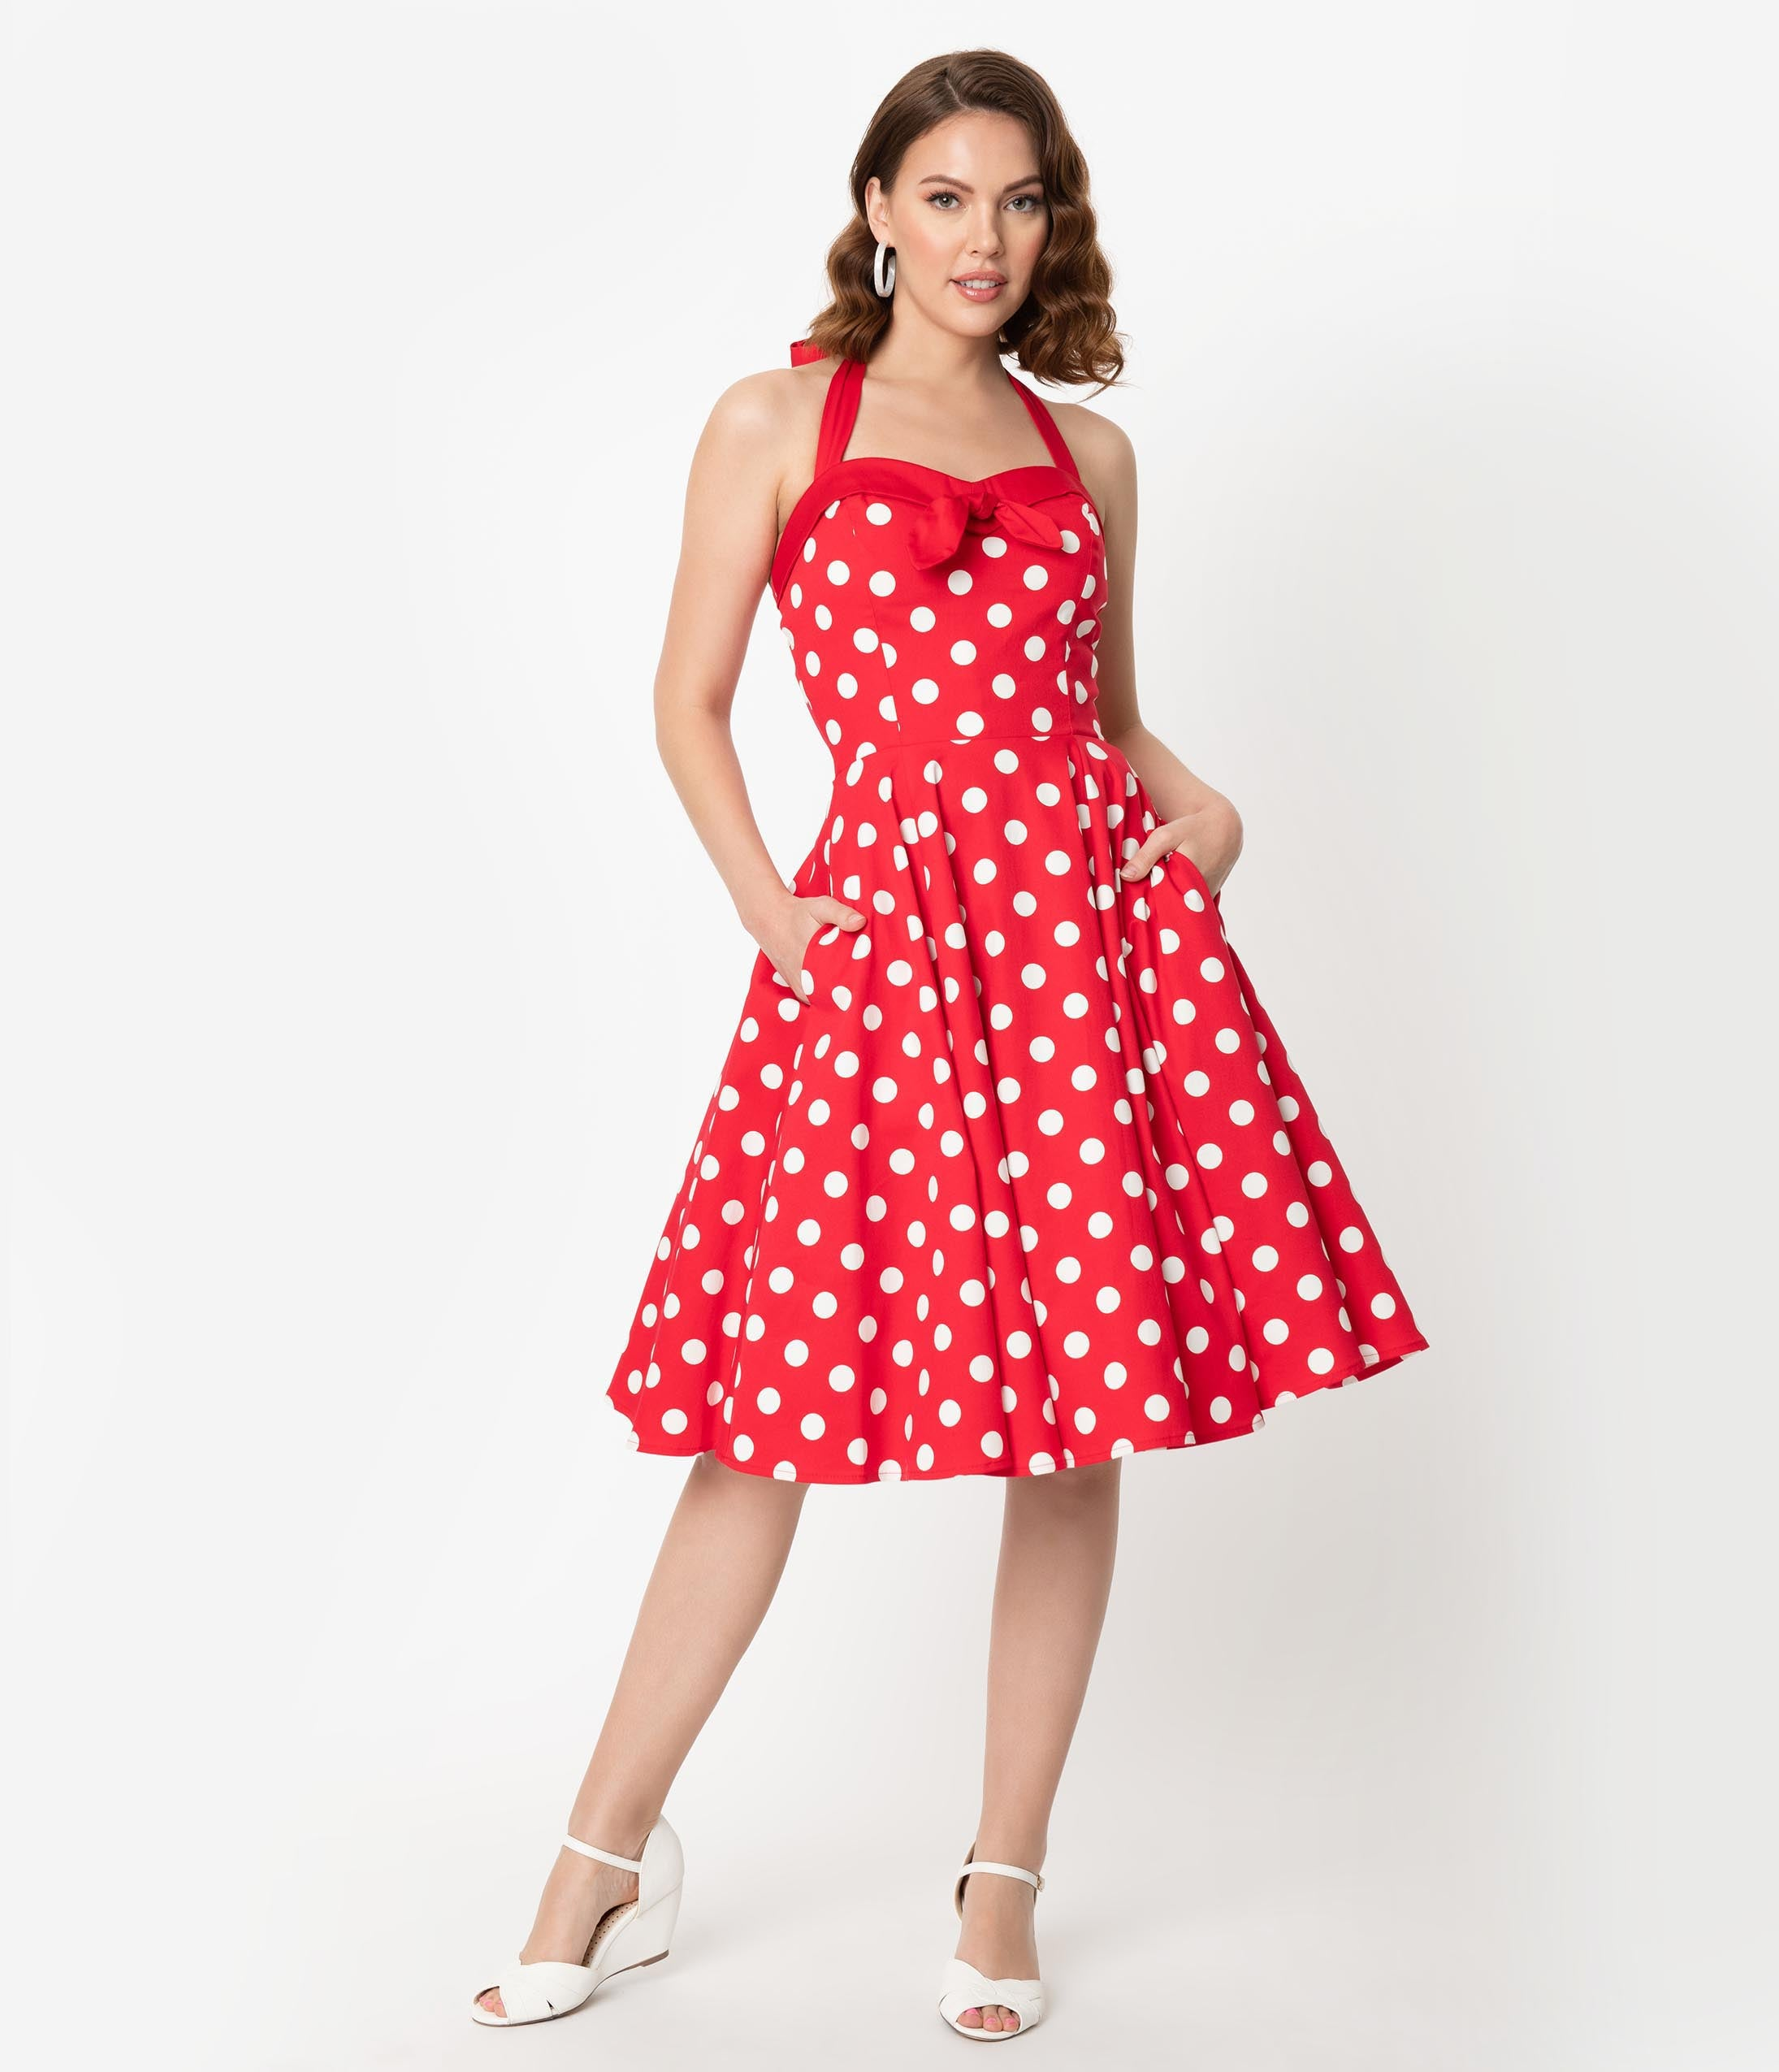 Rockabilly Dresses | Rockabilly Clothing | Viva Las Vegas Vintage Style Red  White Polka Dot Print Halter Swing Dress $68.00 AT vintagedancer.com